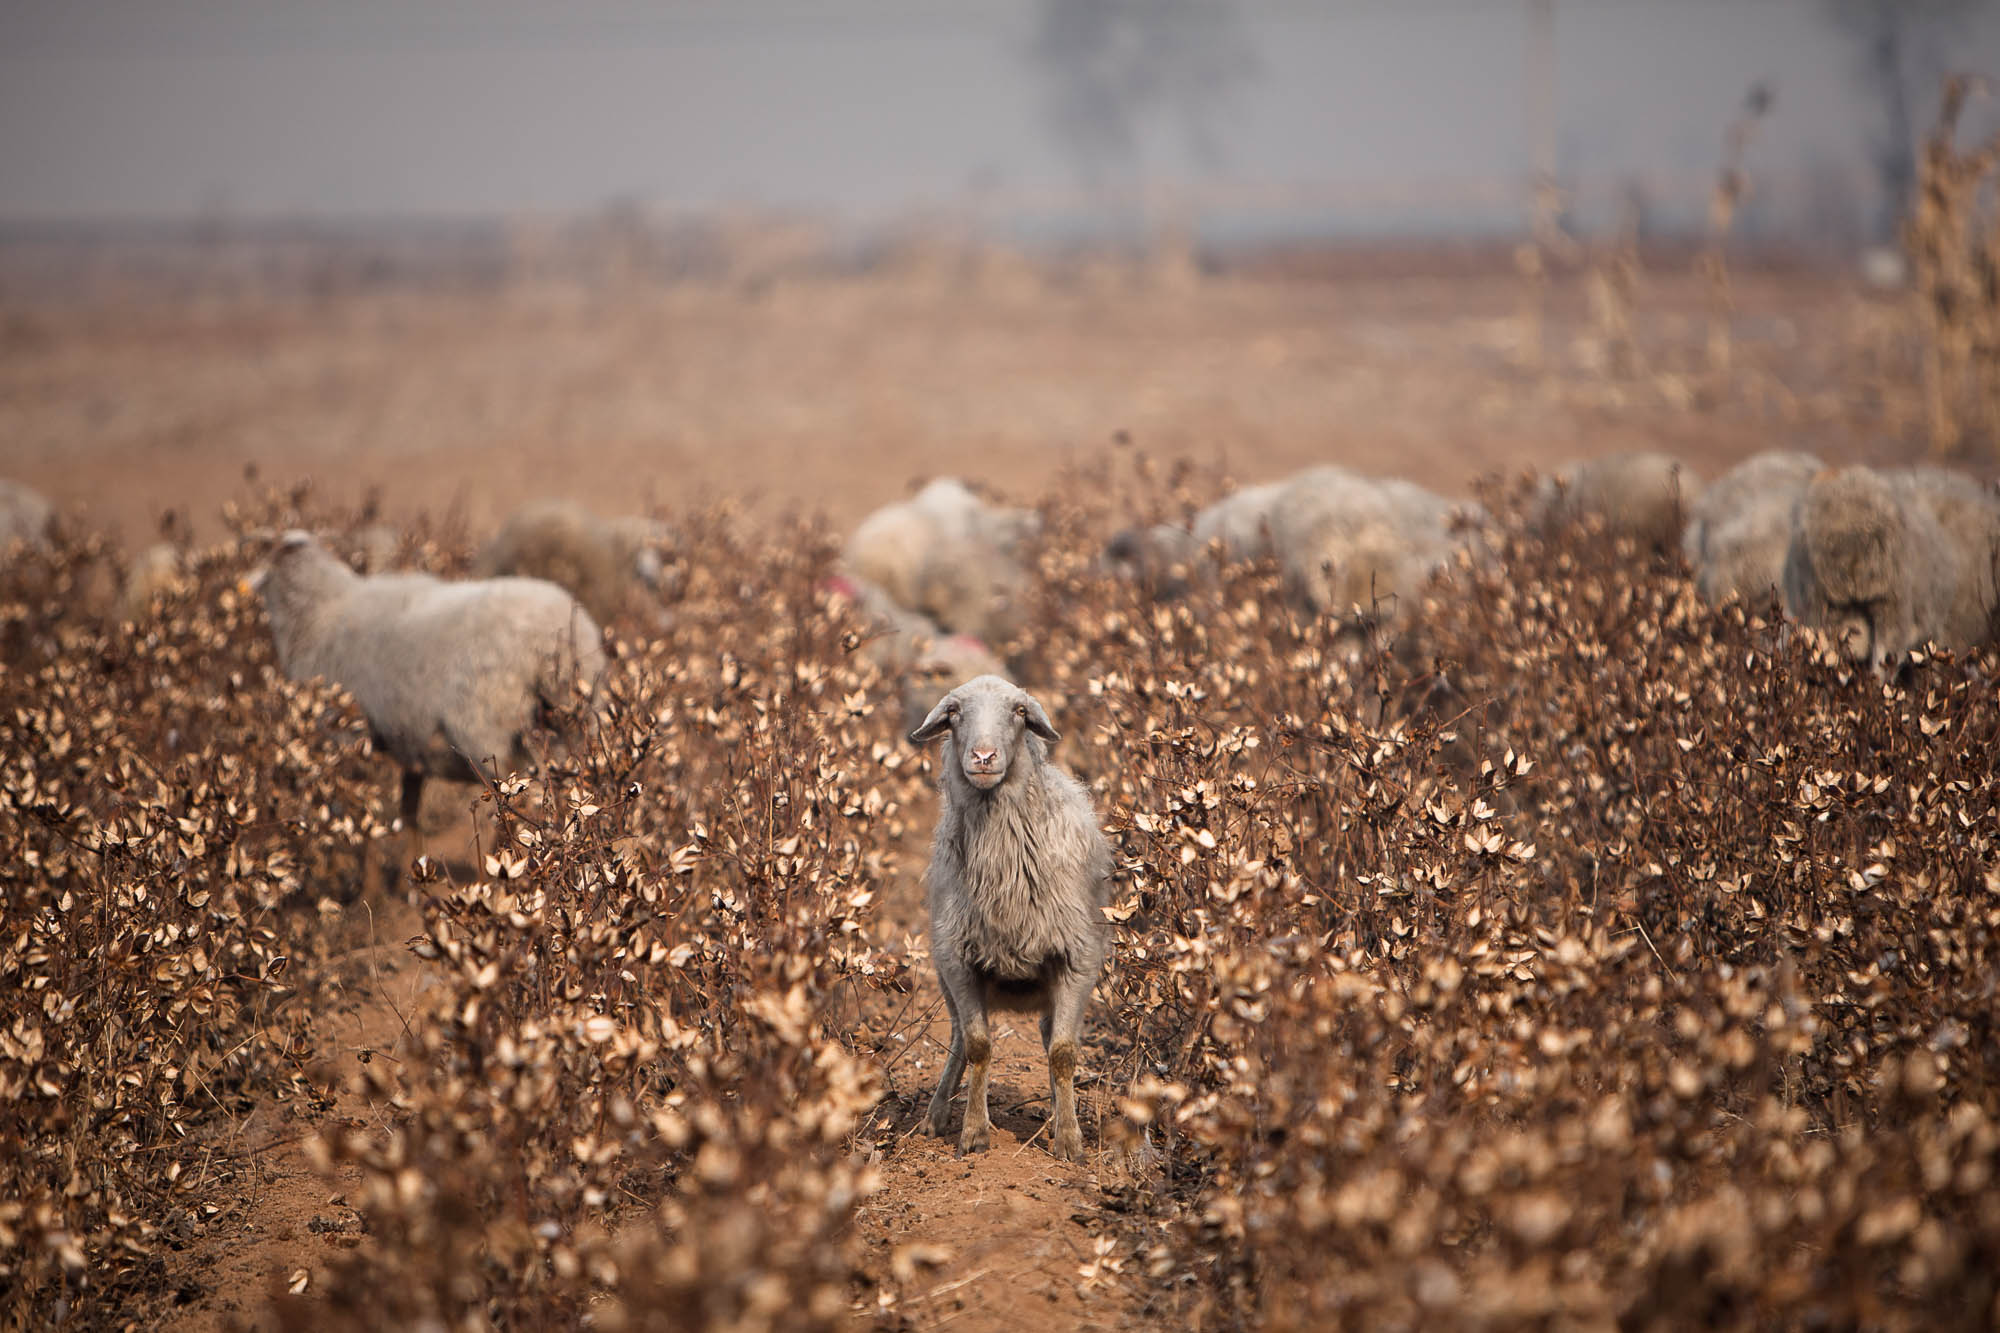 sheep in Shanxi